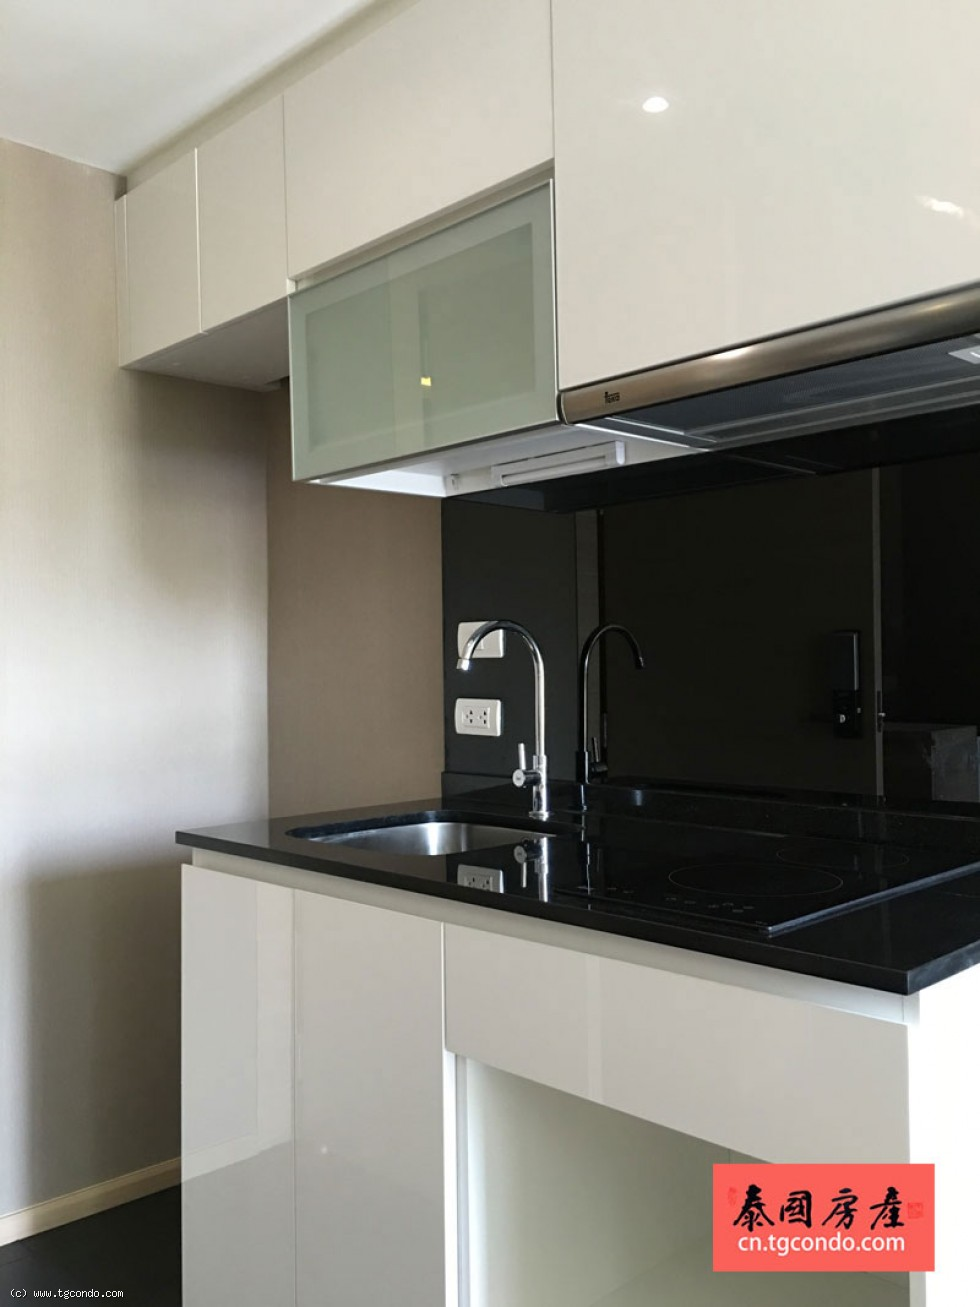 Klass Silom Condo for Rent